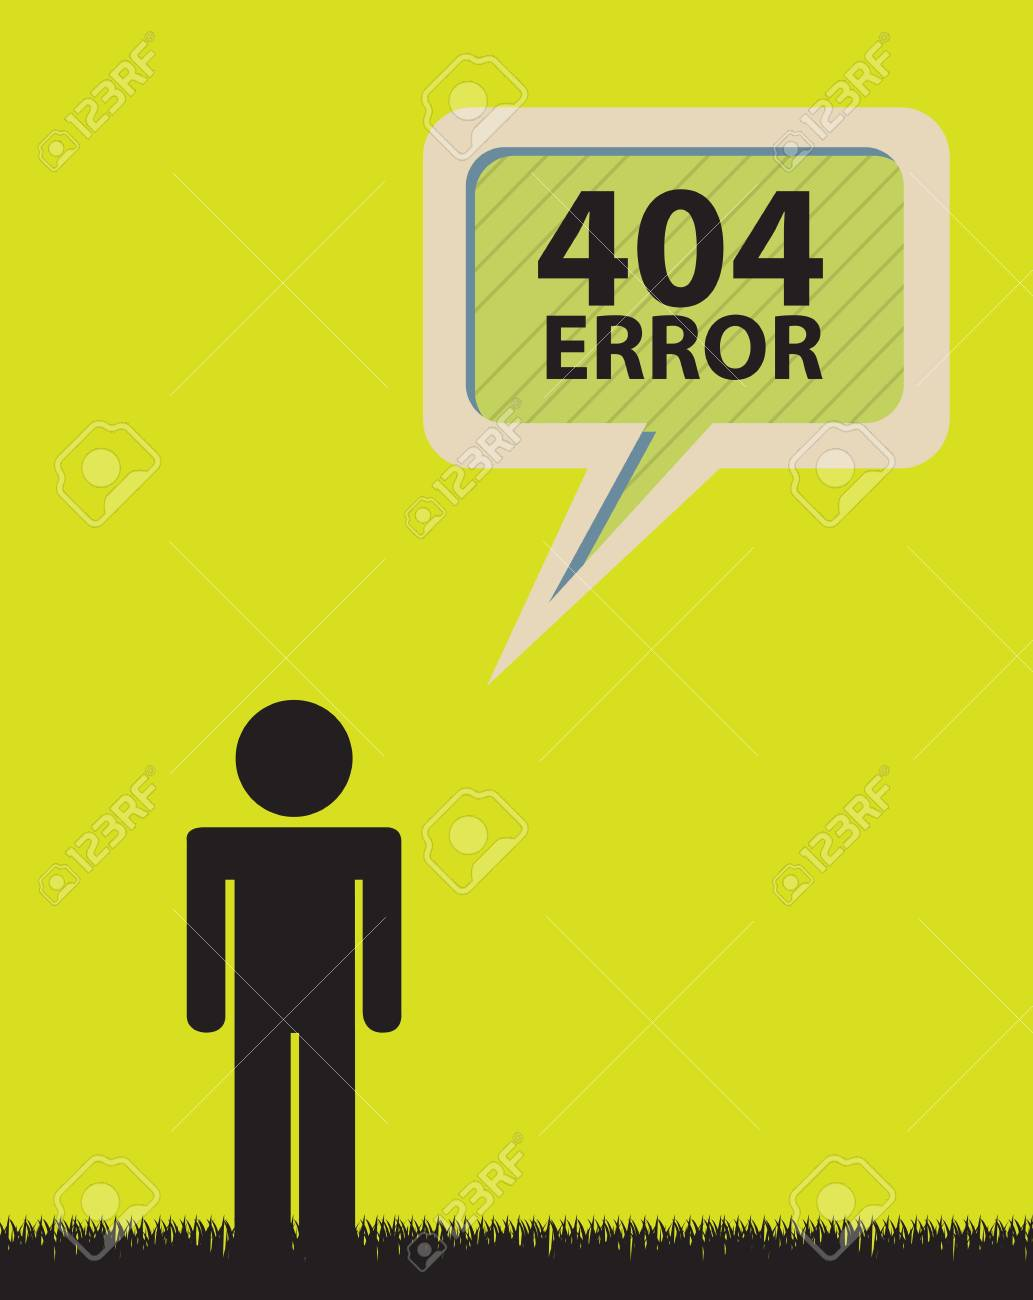 404 Error background with man over yellow illustration Stock Vector - 19305894